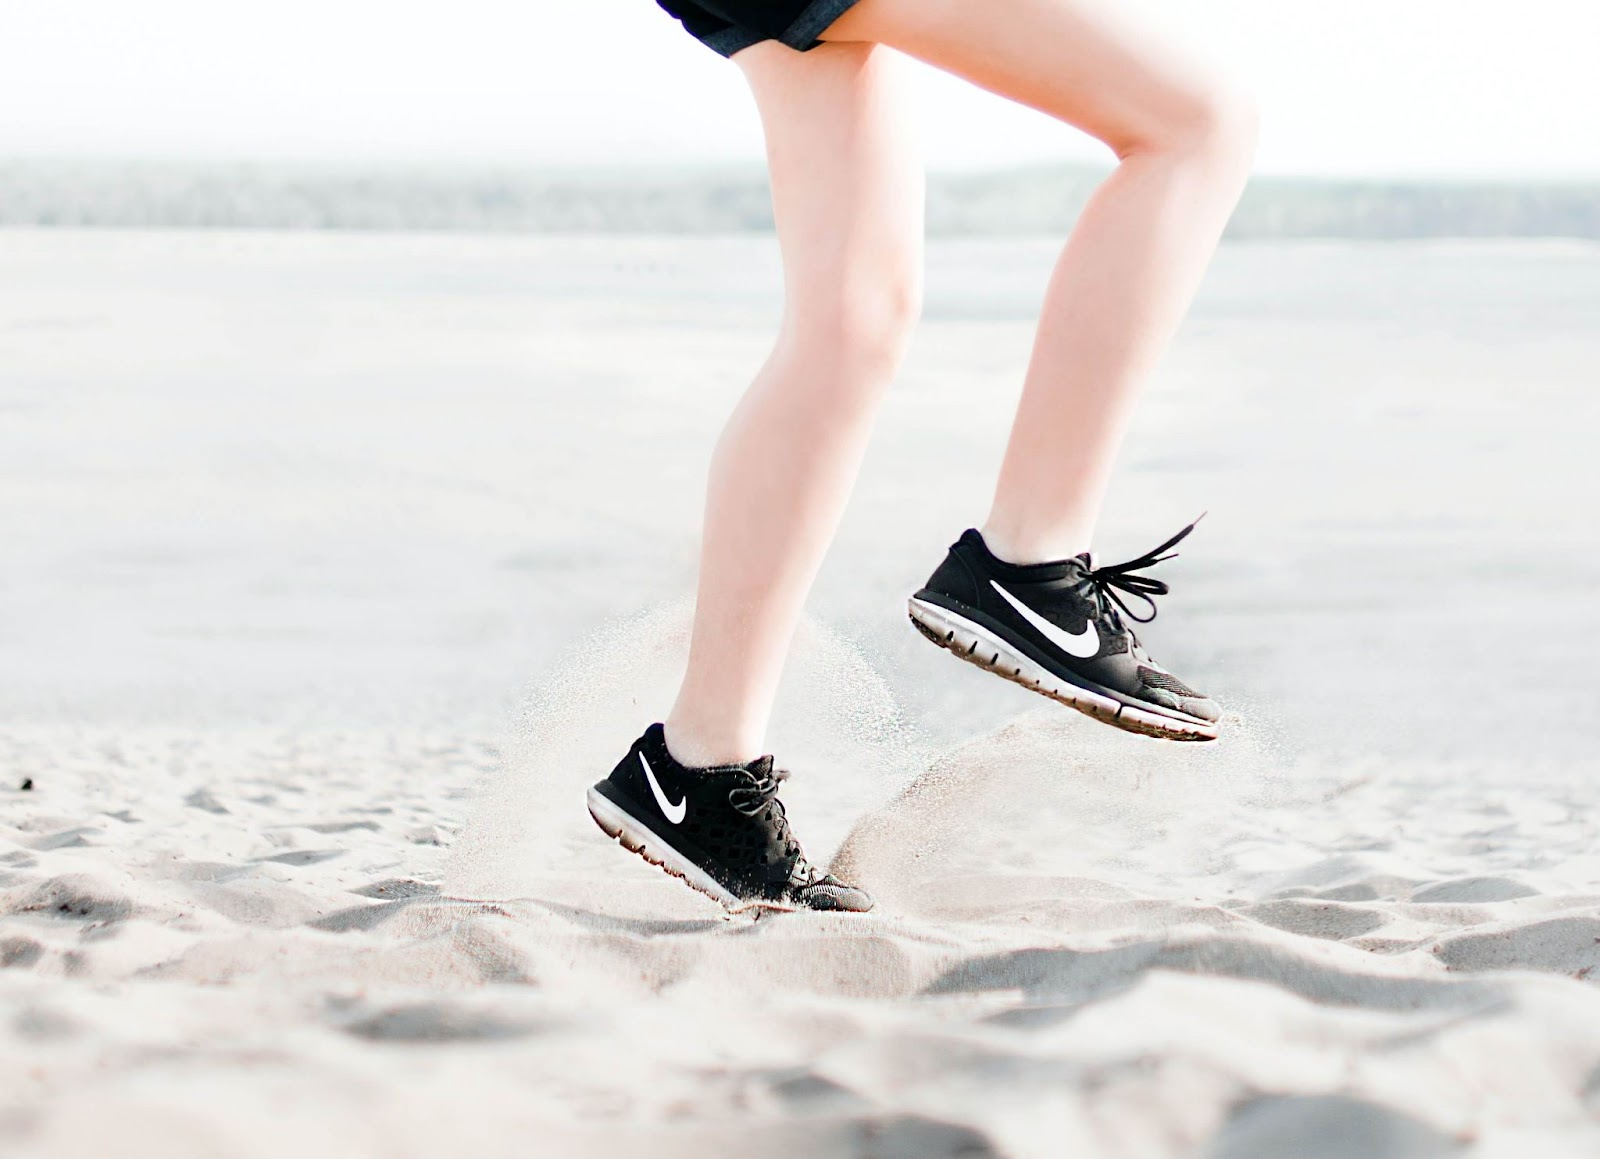 Person running on a beach